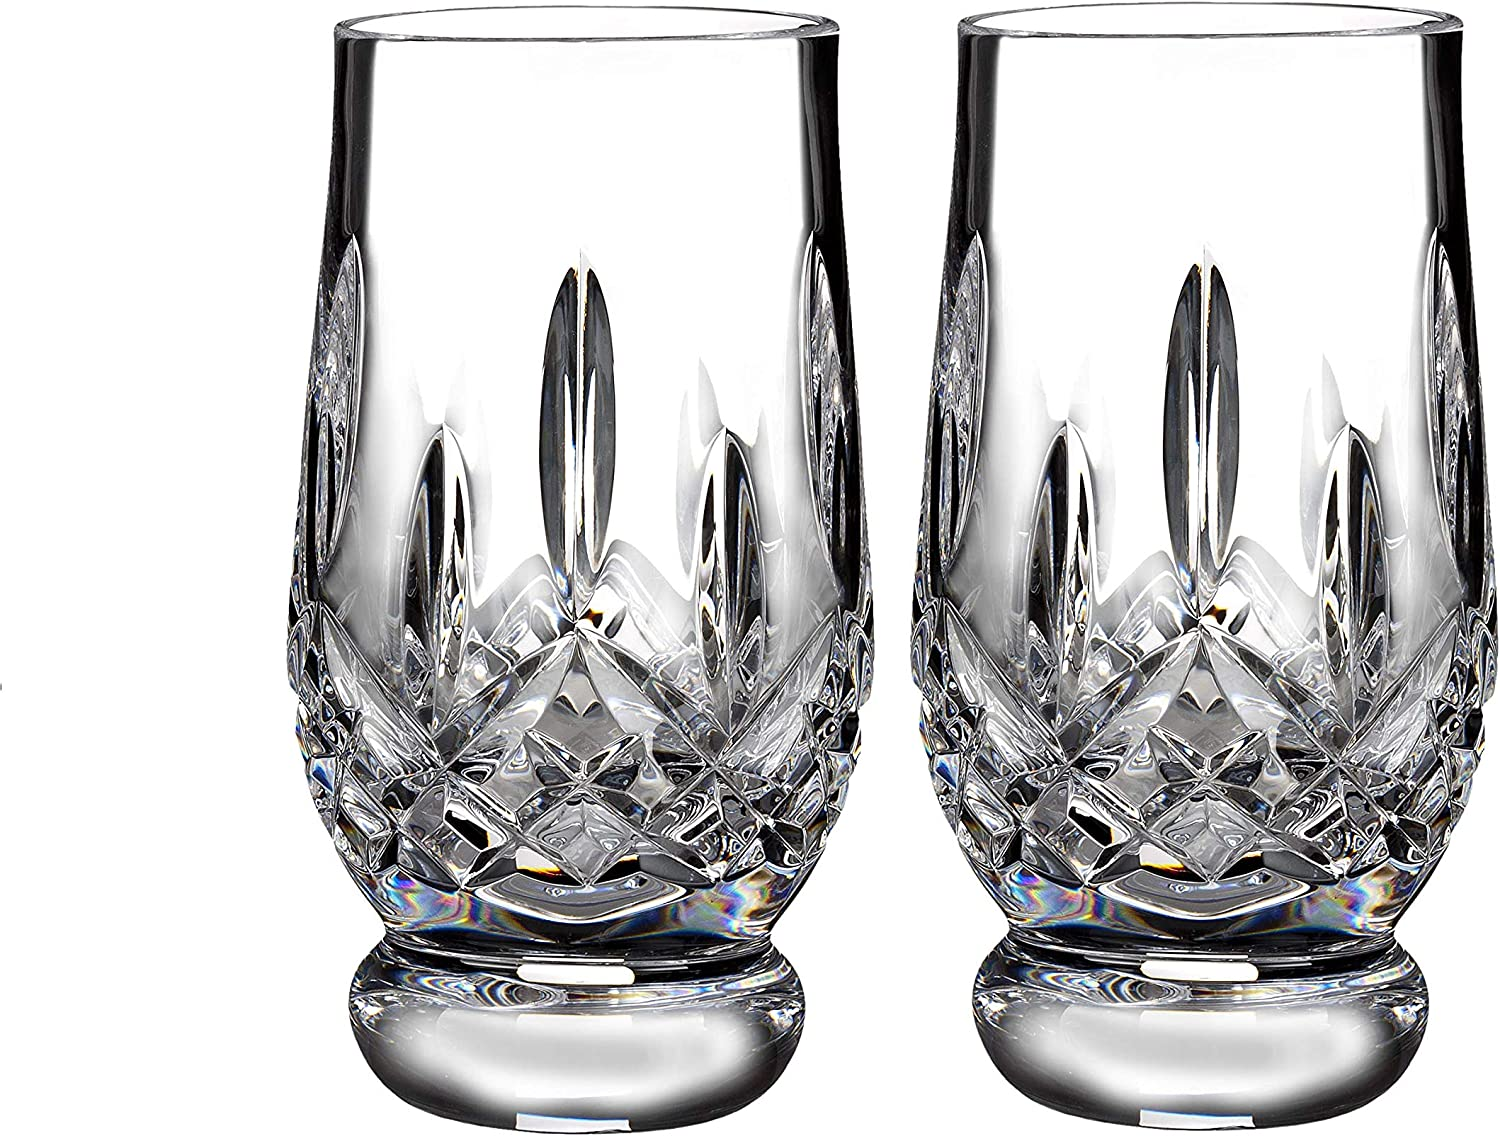 Waterford Connoisseur Footed 7oz Pair, Lead Crystal, 7 Fluid_Ounces, Lismore Tumbler FTD Tast 5.5oz Pr